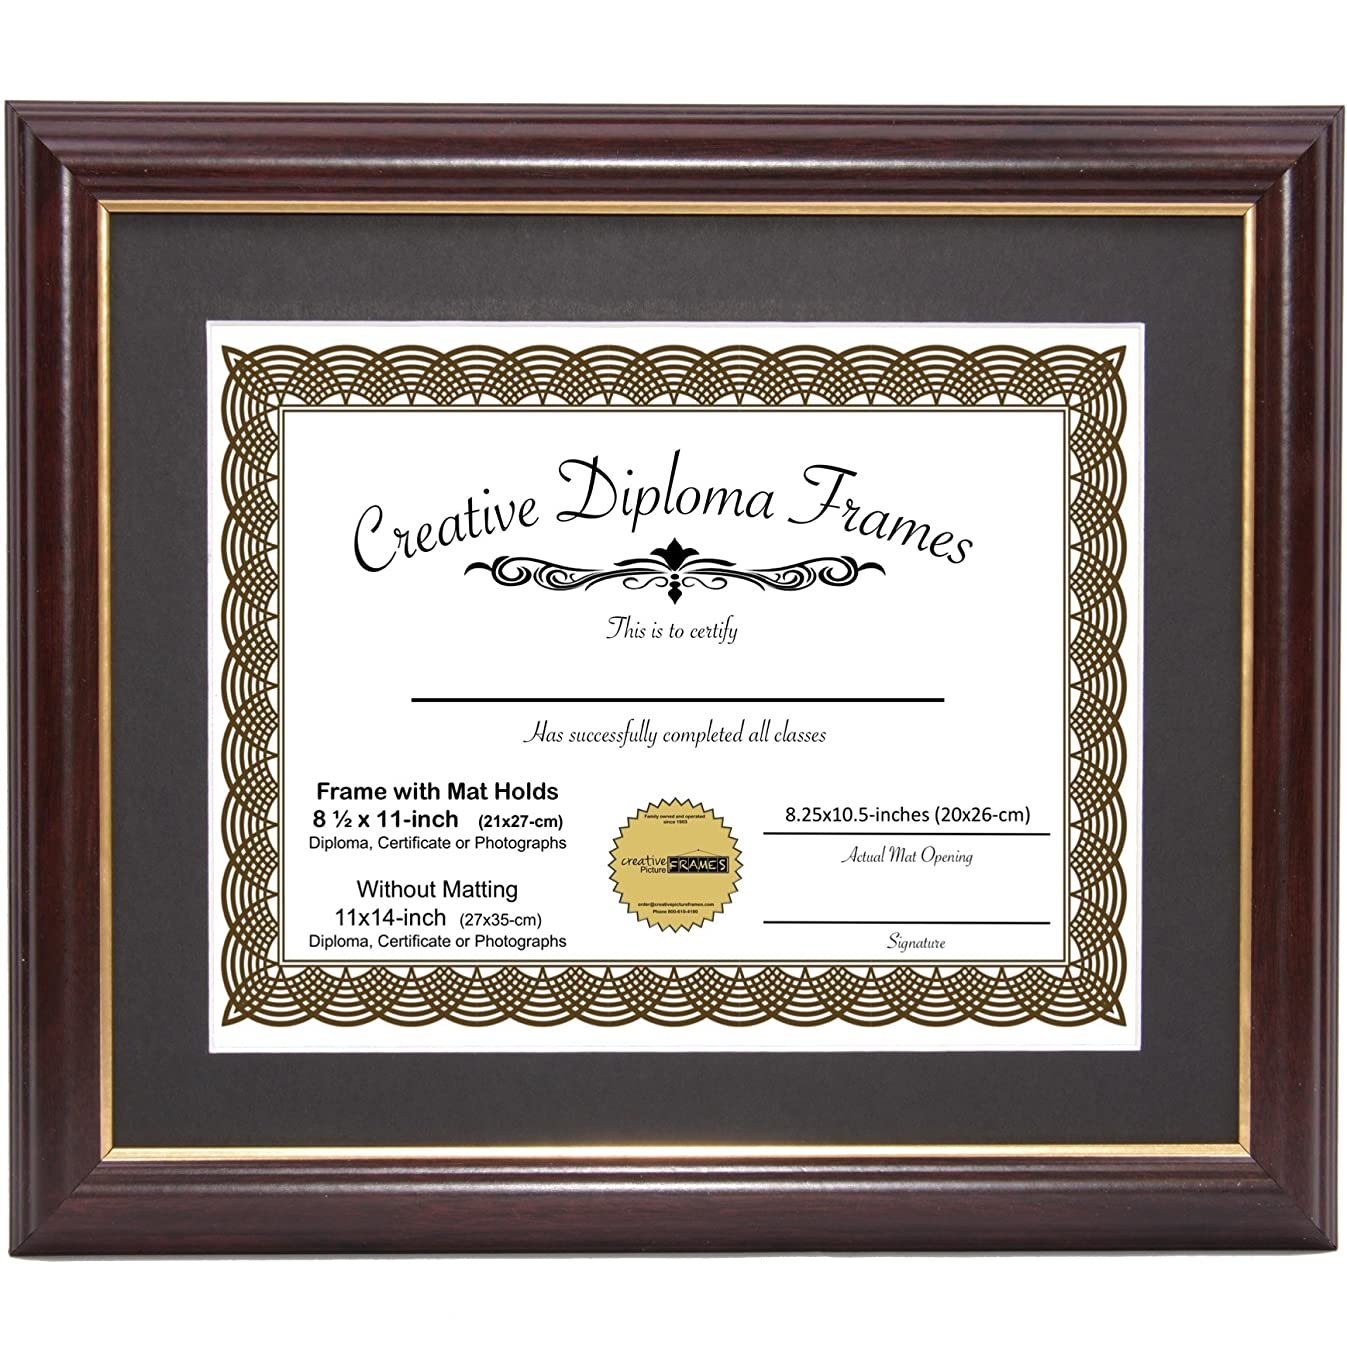 CreativePF [11x14mh.gd] Mahogany Frame with Gold Rim, Black Matting Holds 8.5 by 11-inch Diploma with Easel and Installed Hangers